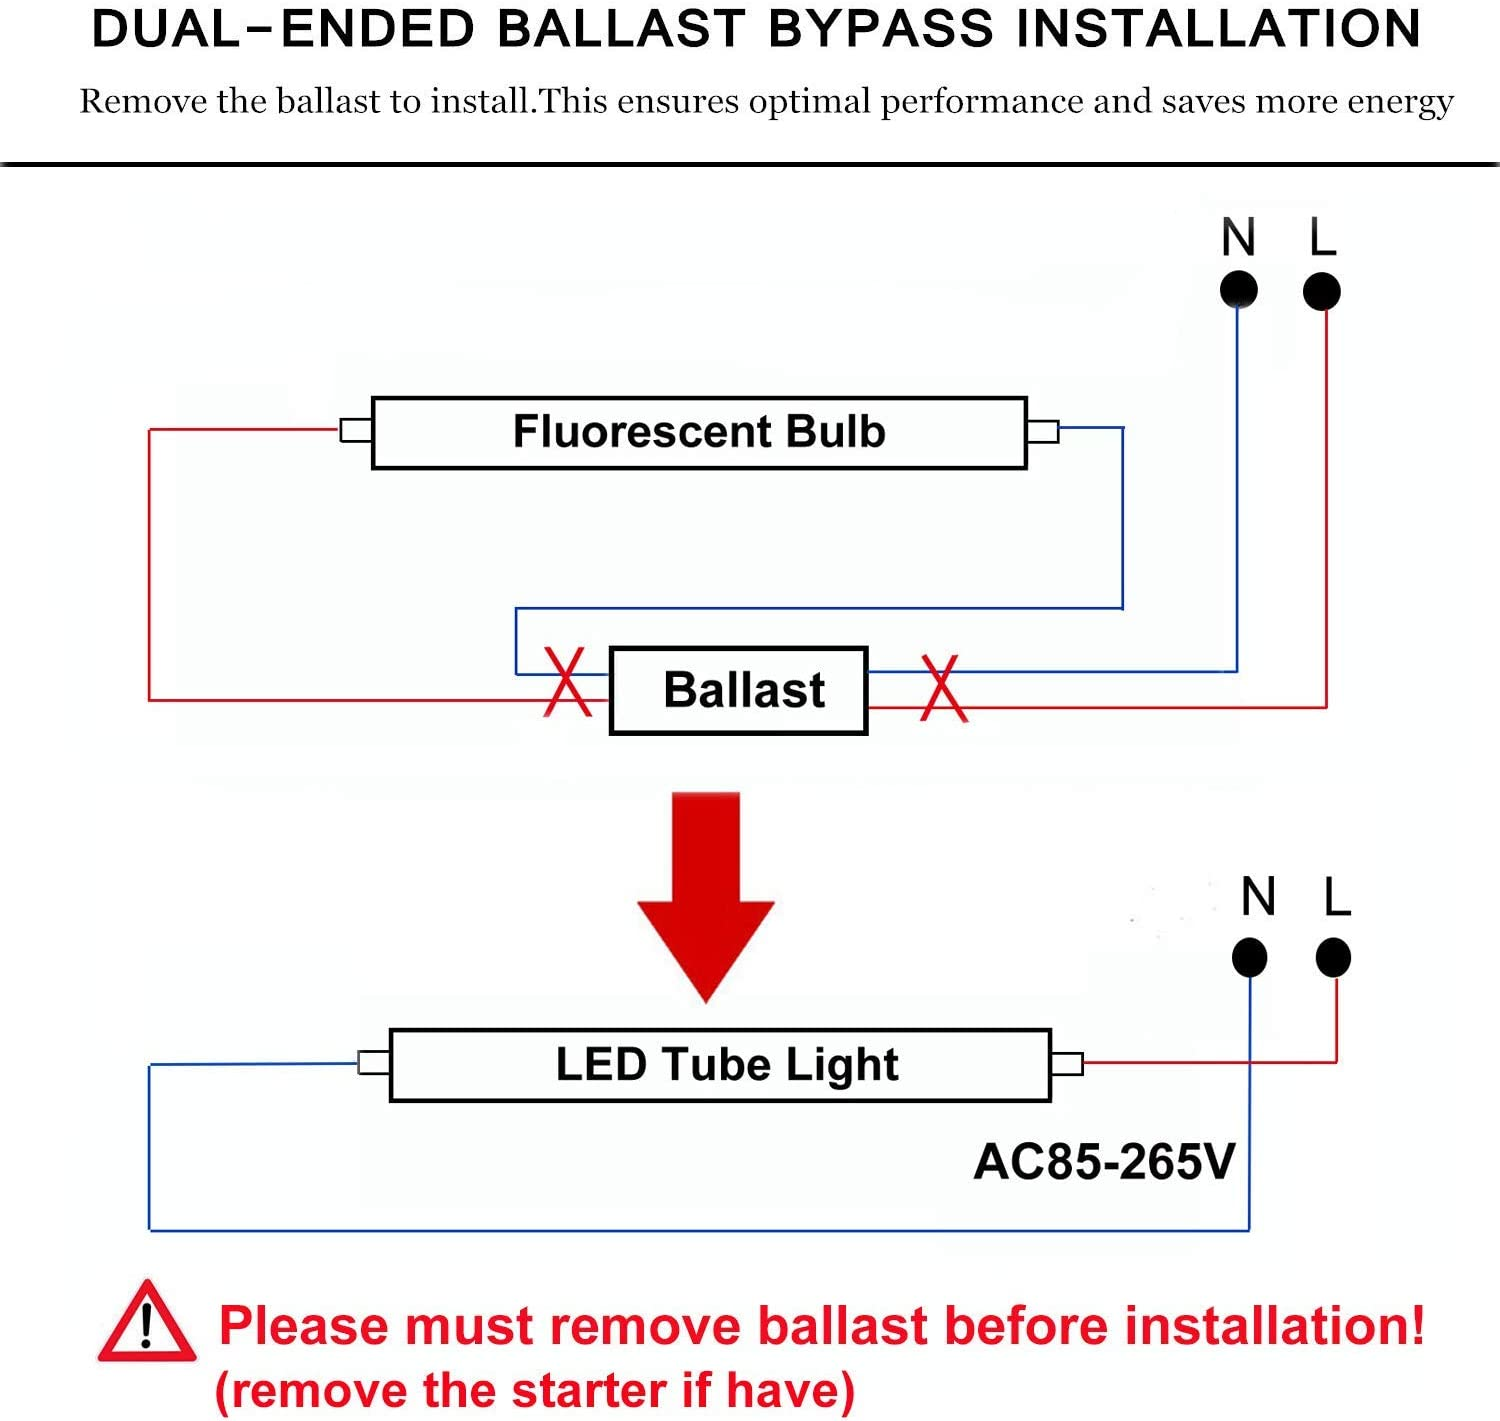 Ballast Bypass 8 Foot Led Bulbs for Fluorescent Replacement CNSUNWAY LIGHTING T8 T10 T12 LED Light Tube 5000K Daylight Dual-Ended Power 45W 4800LM 4 Pack Frosted Cover